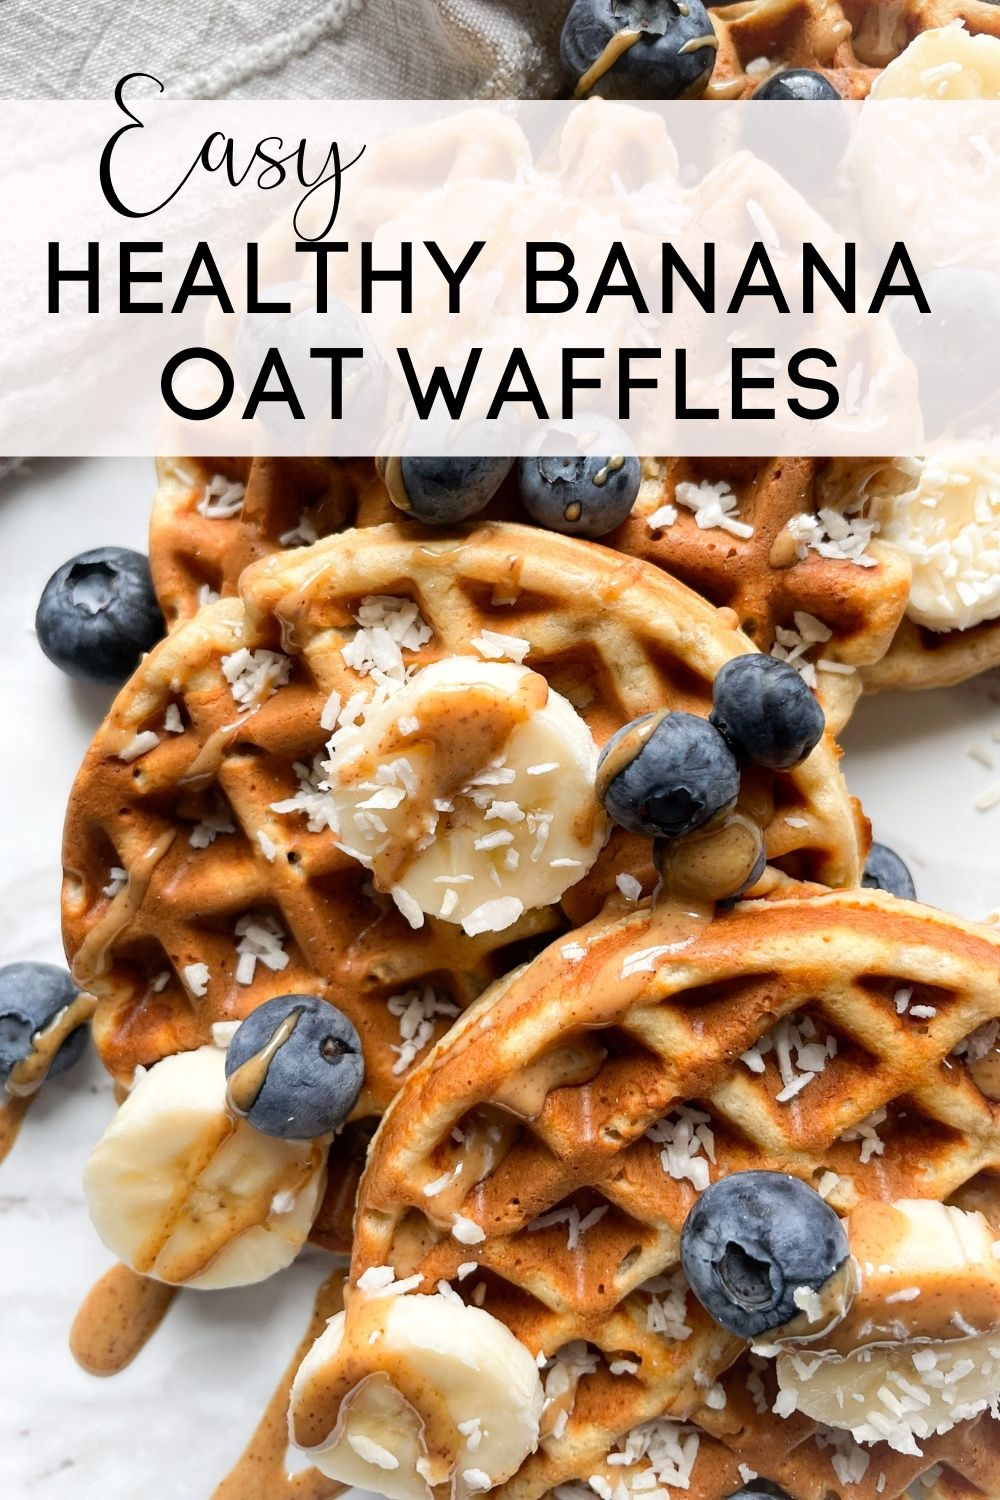 waffles on marble background with text overlay